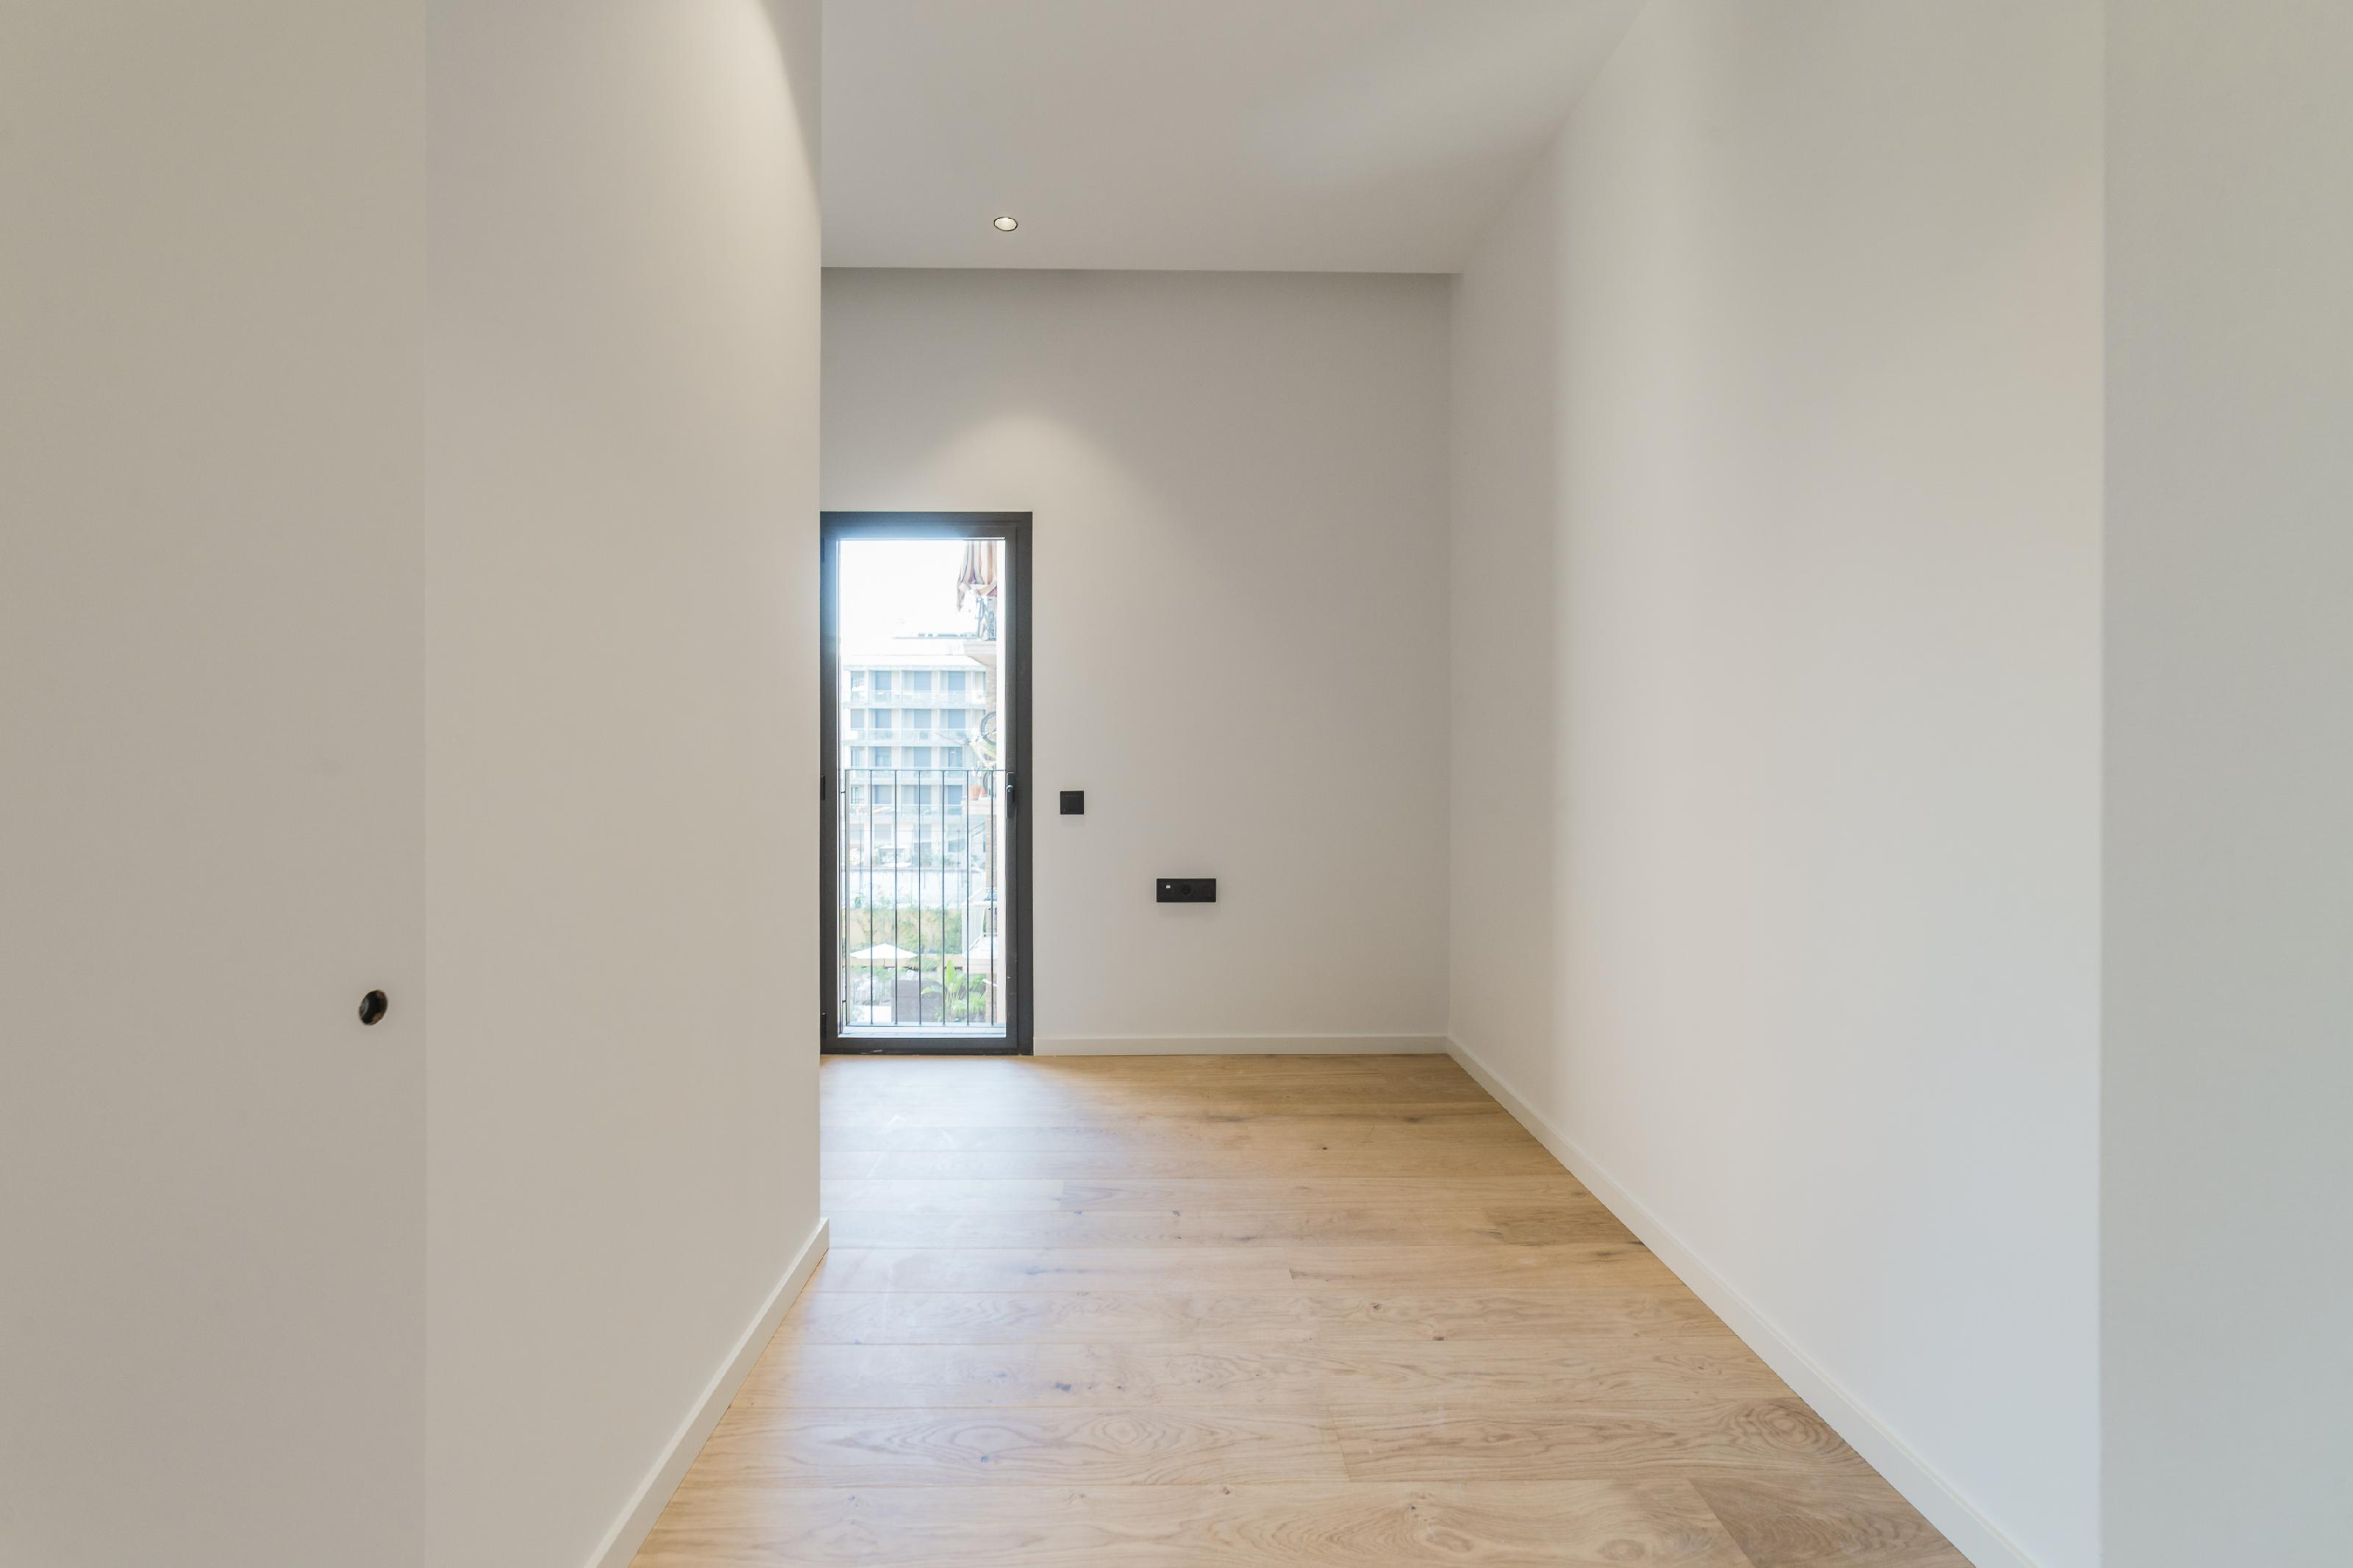 182474 Apartment for sale in Eixample, Old Left Eixample 35